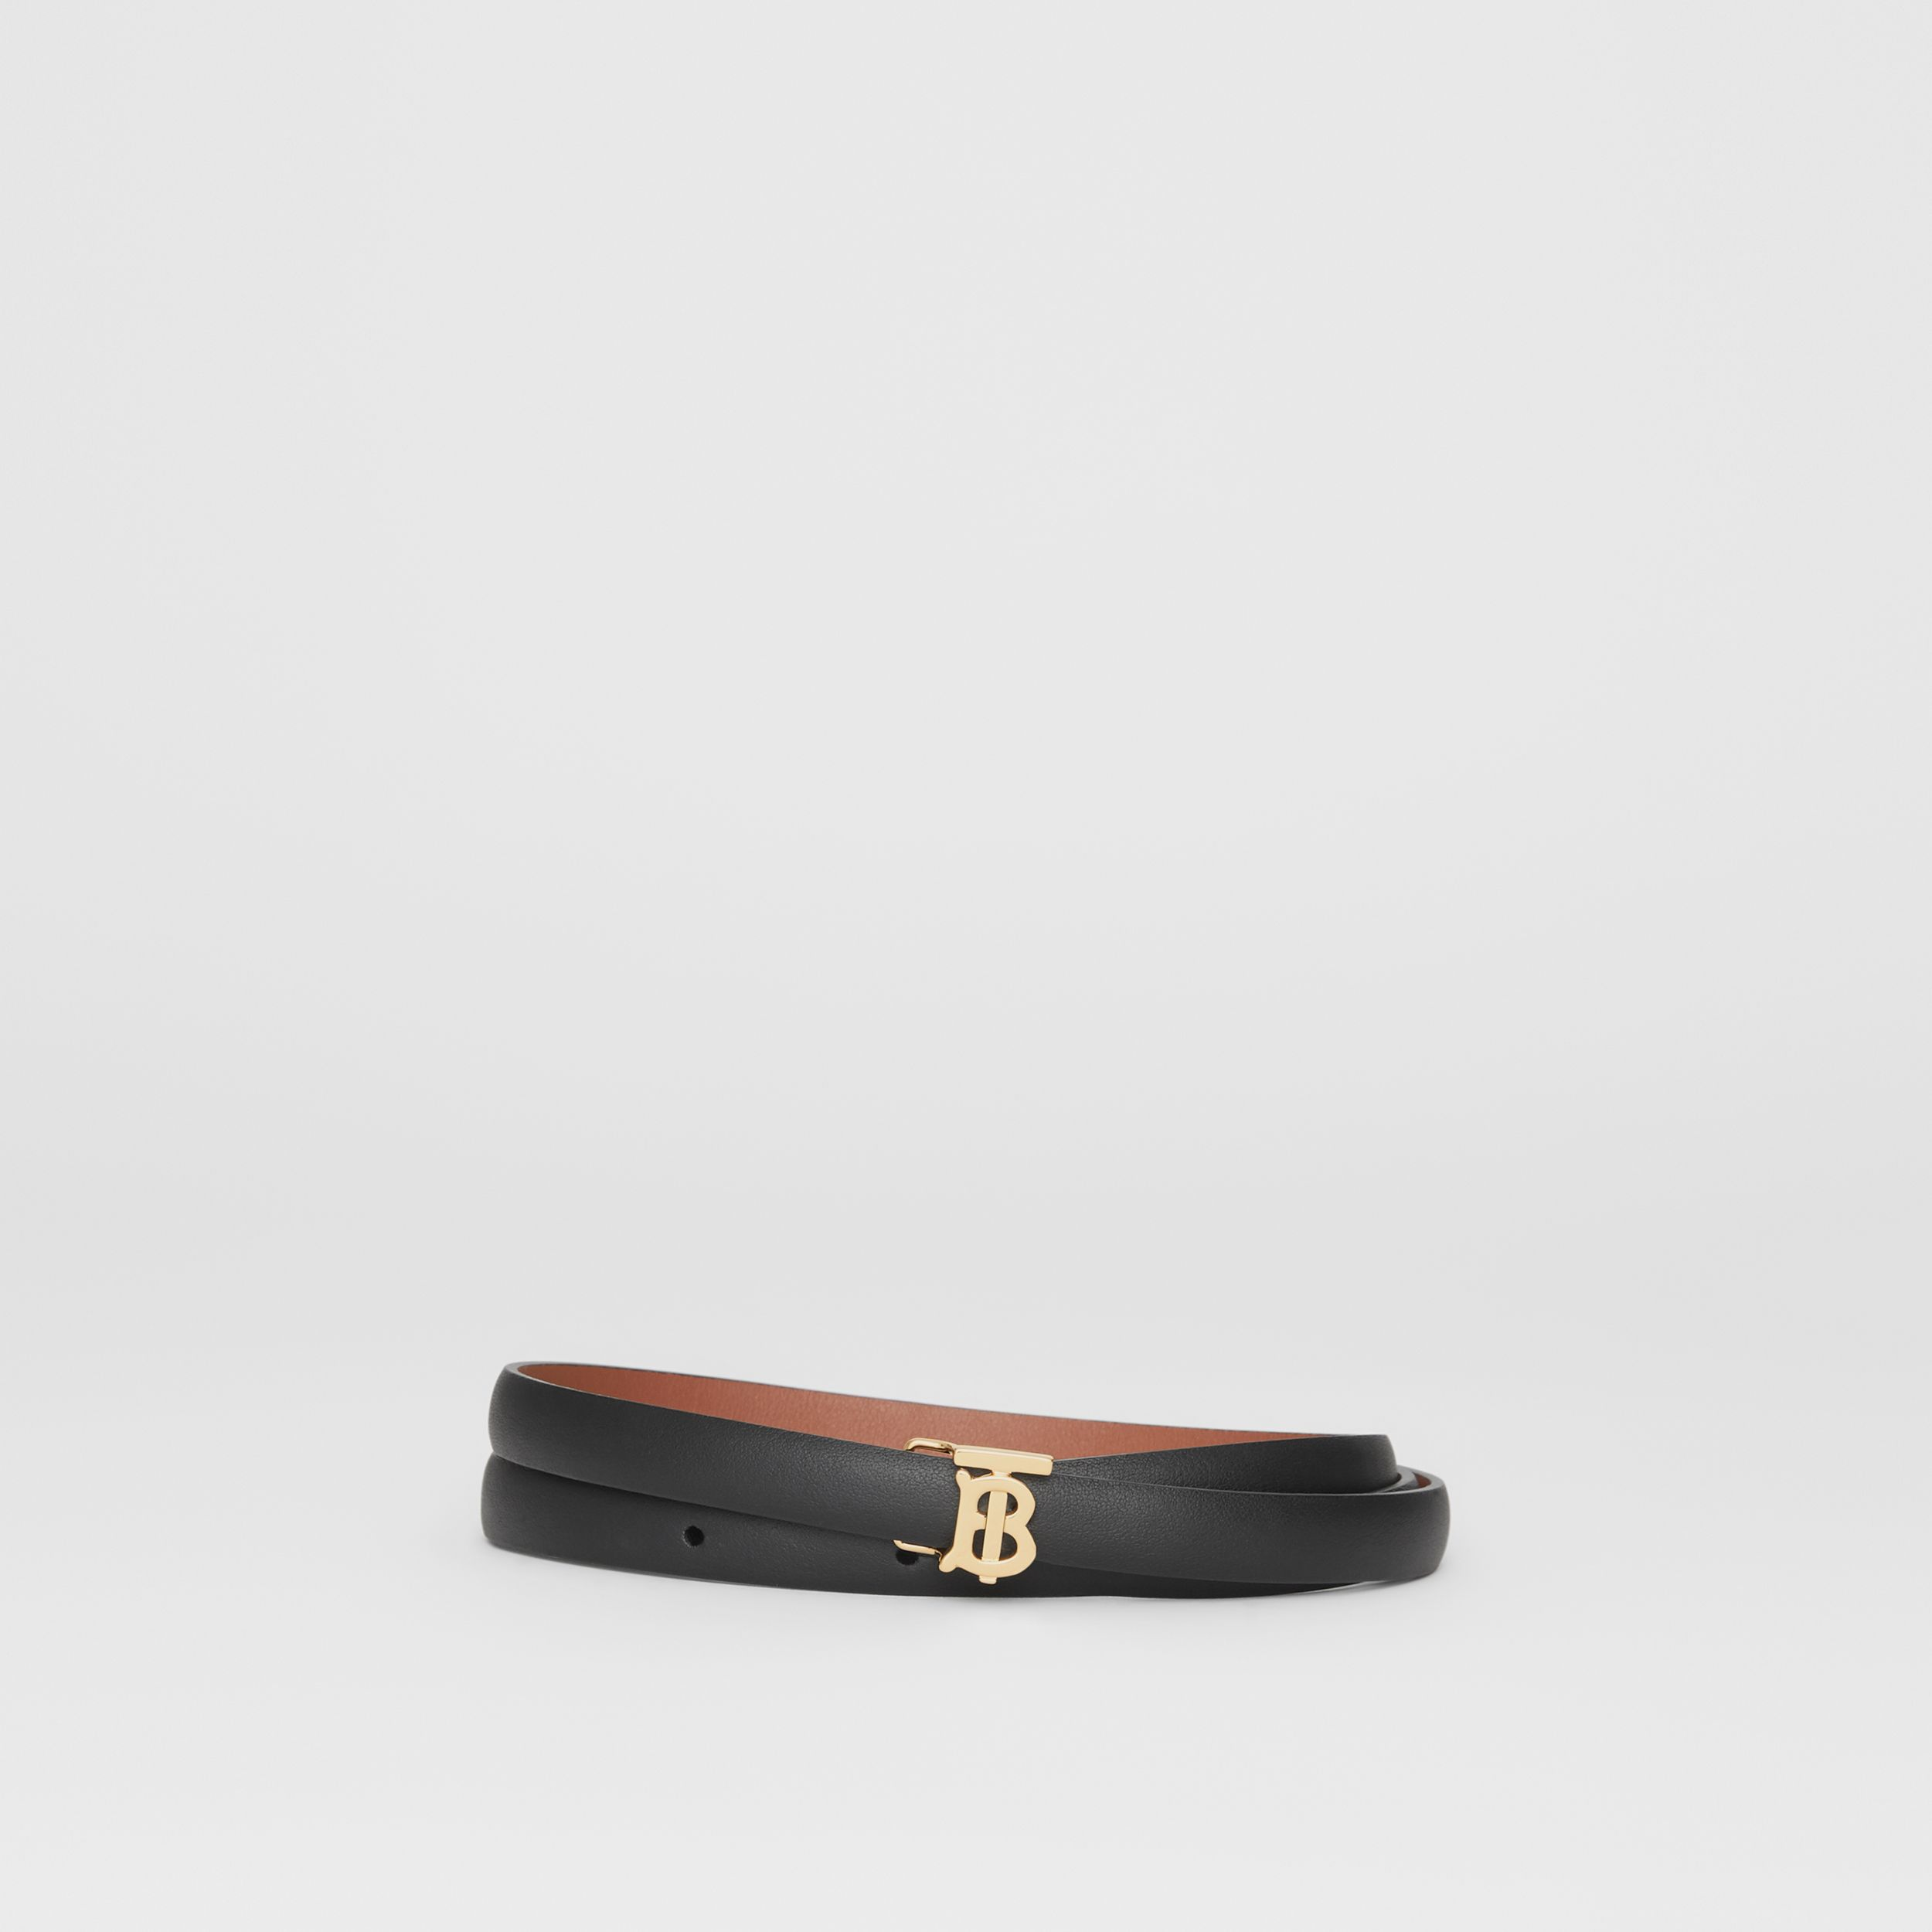 Reversible Monogram Motif Leather Wrap Belt in Black/malt Brown - Women | Burberry - 1